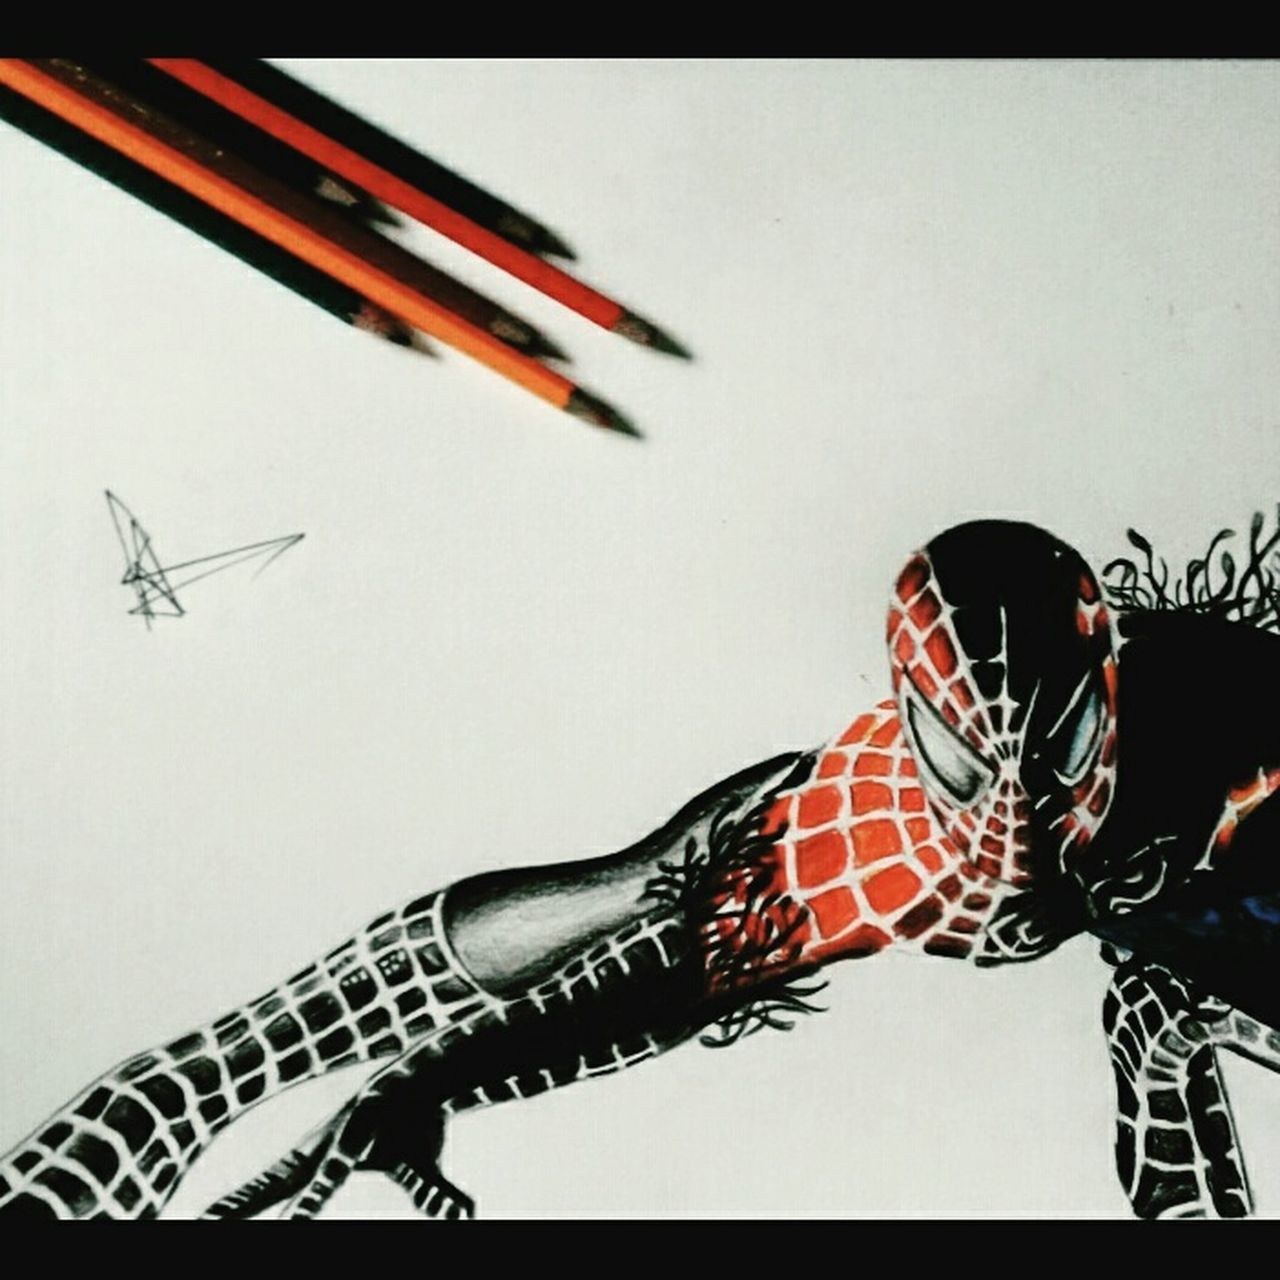 """ Spiderman Realistic sketch."" Instalike Insragrammers Instaart Instaartwork Instaartsy 141 Mobography Marvel Spiderman Realistic Realistic Art Colourful Venom Sketch Art ArtWork Art, Drawing, Creativity Sketchoftheday  Sketching Artistic Photo Artsy SketchUp Close-up Sketchoftheday  Artistic Quicksketch"